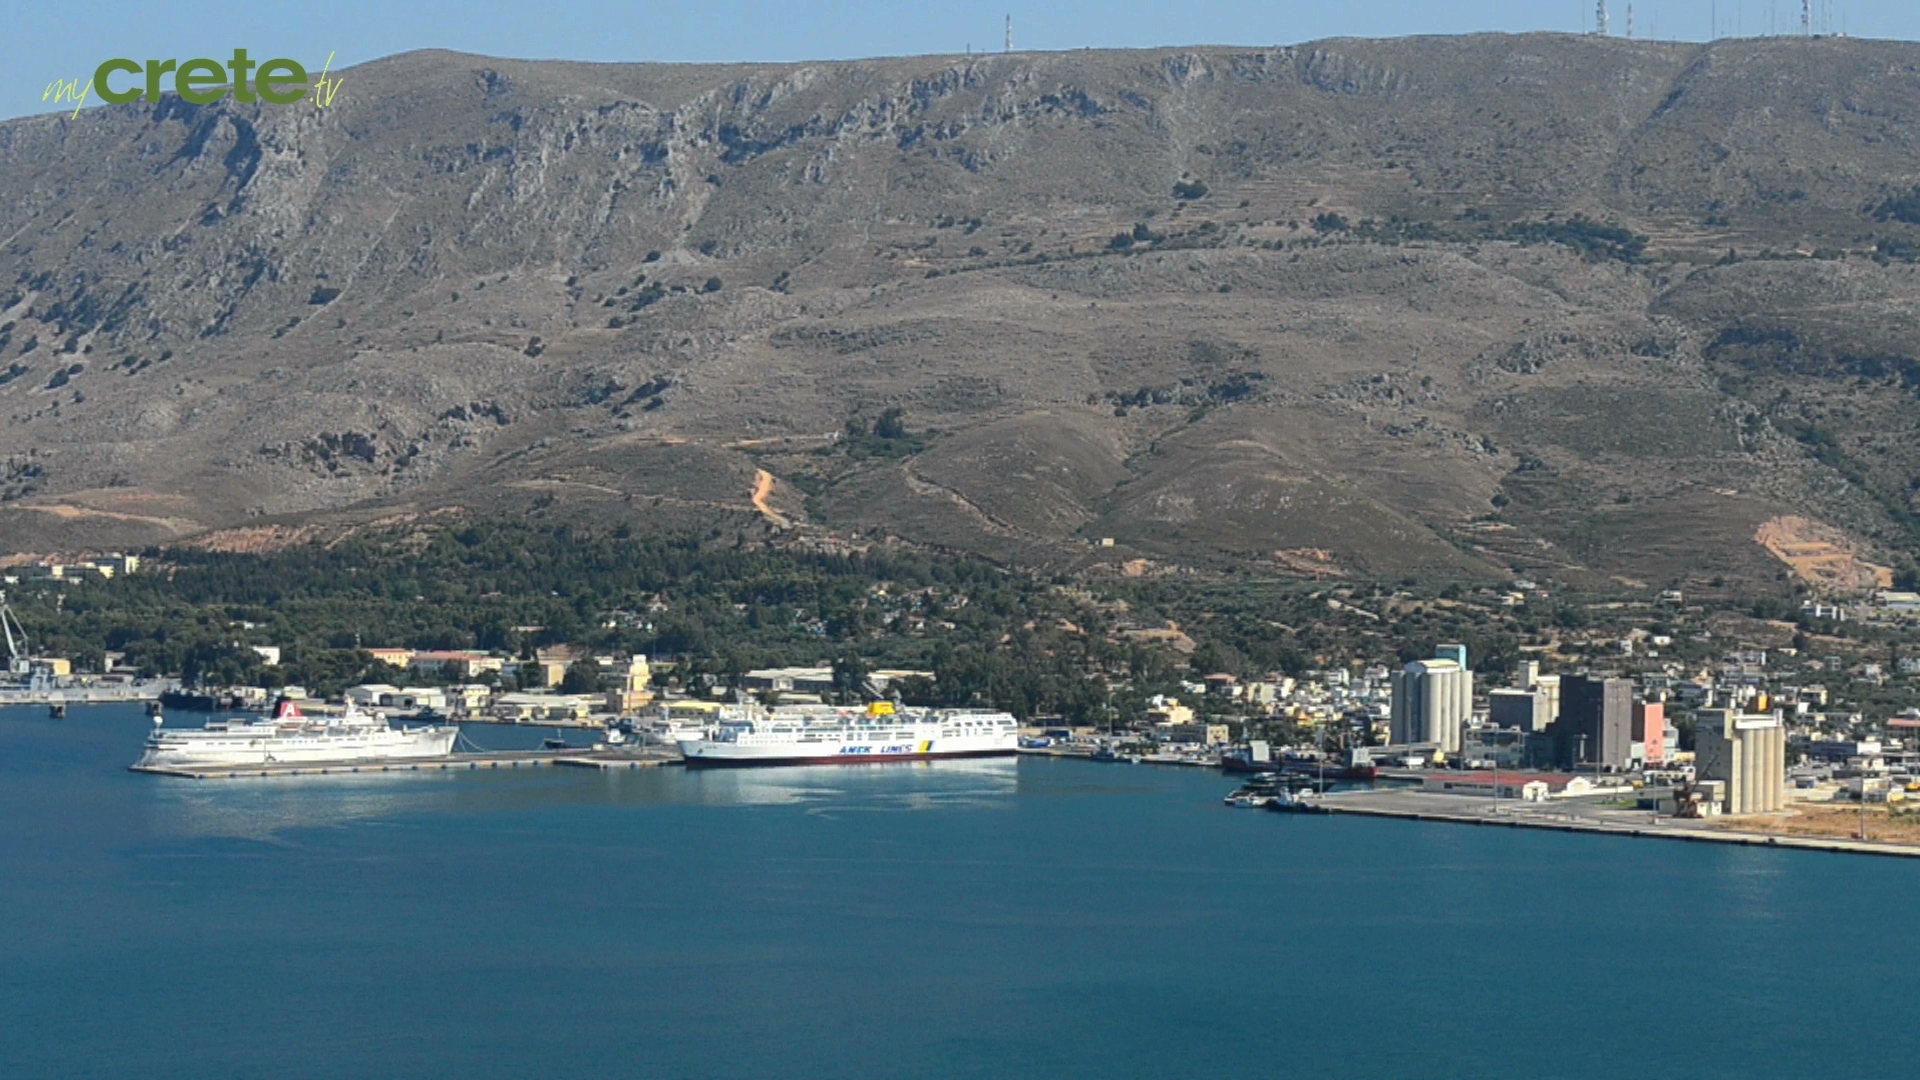 Walking in the picturesque cities of Crete